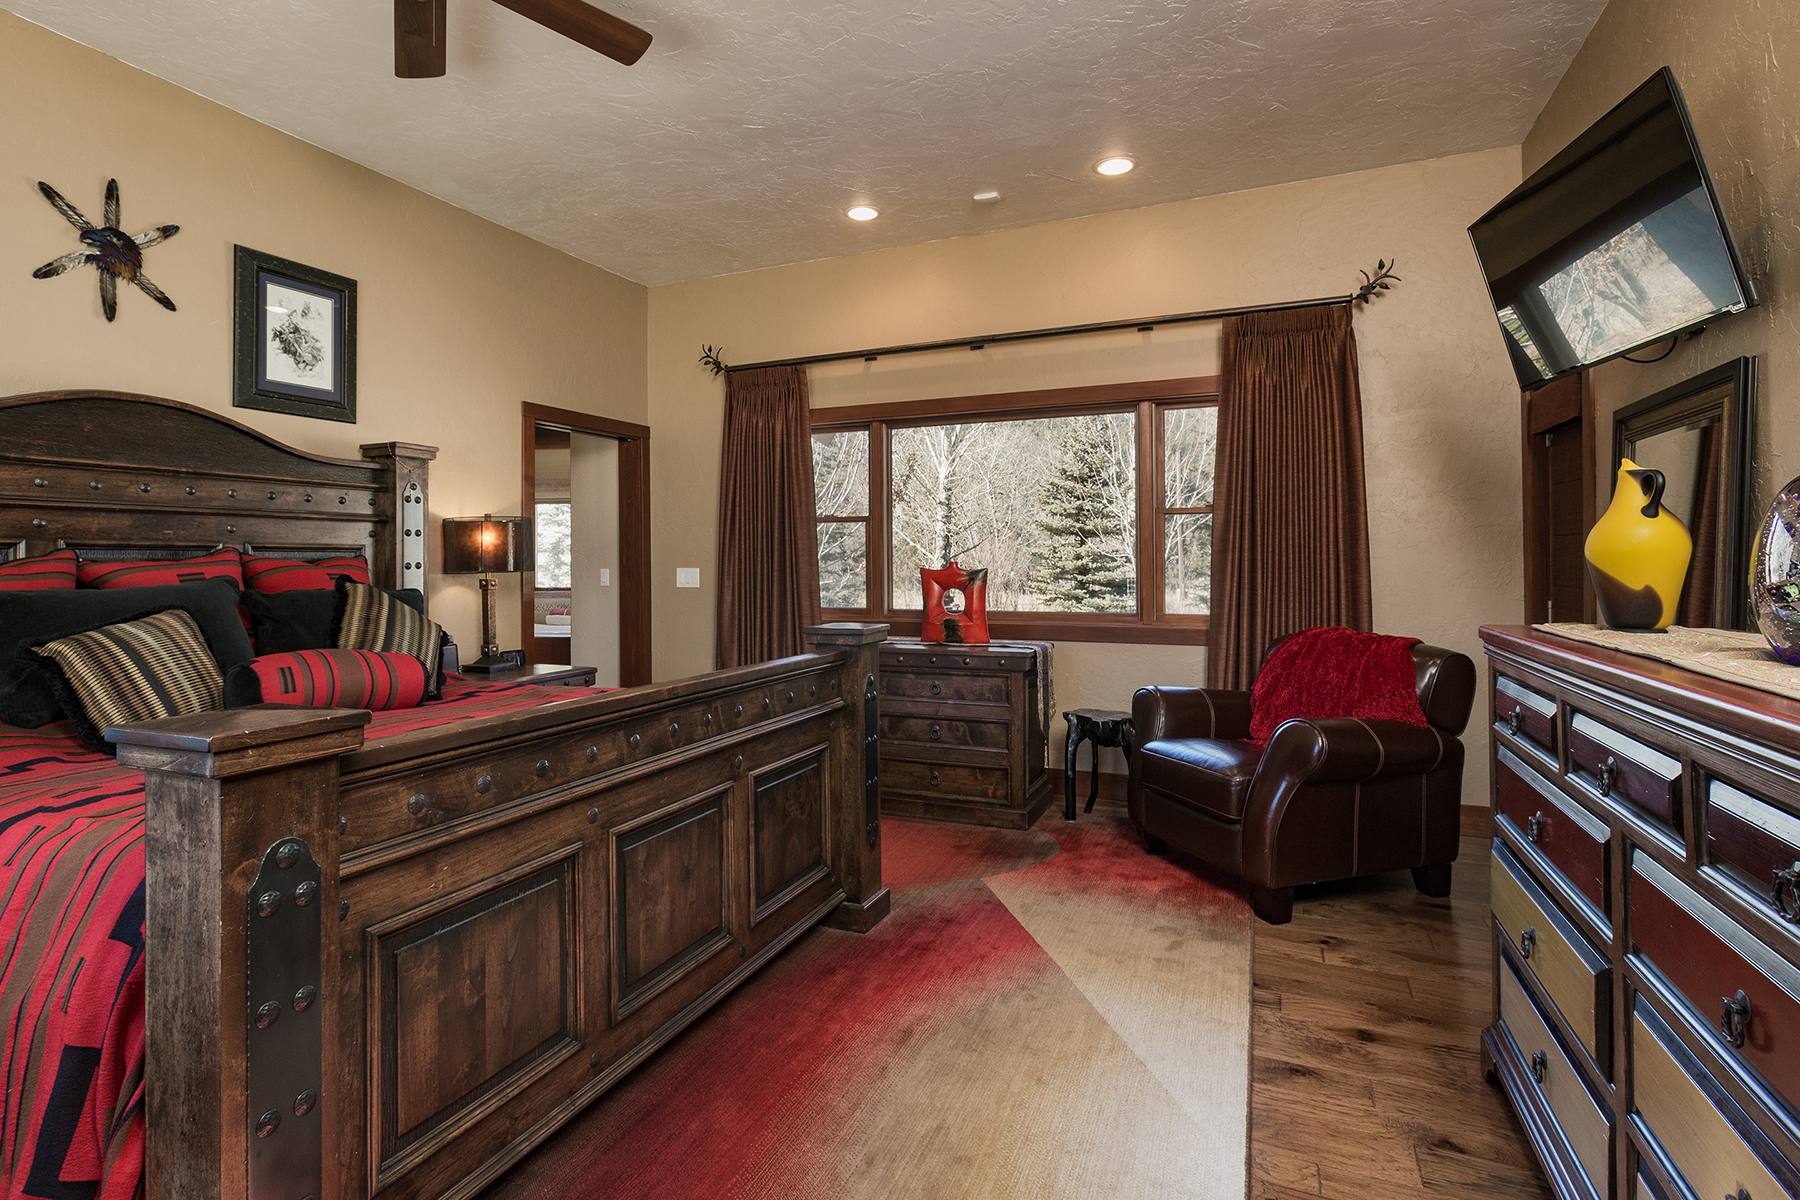 Additional photo for property listing at 840 Red Rock Road 840 Red Rock Road Durango, Colorado 81301 United States